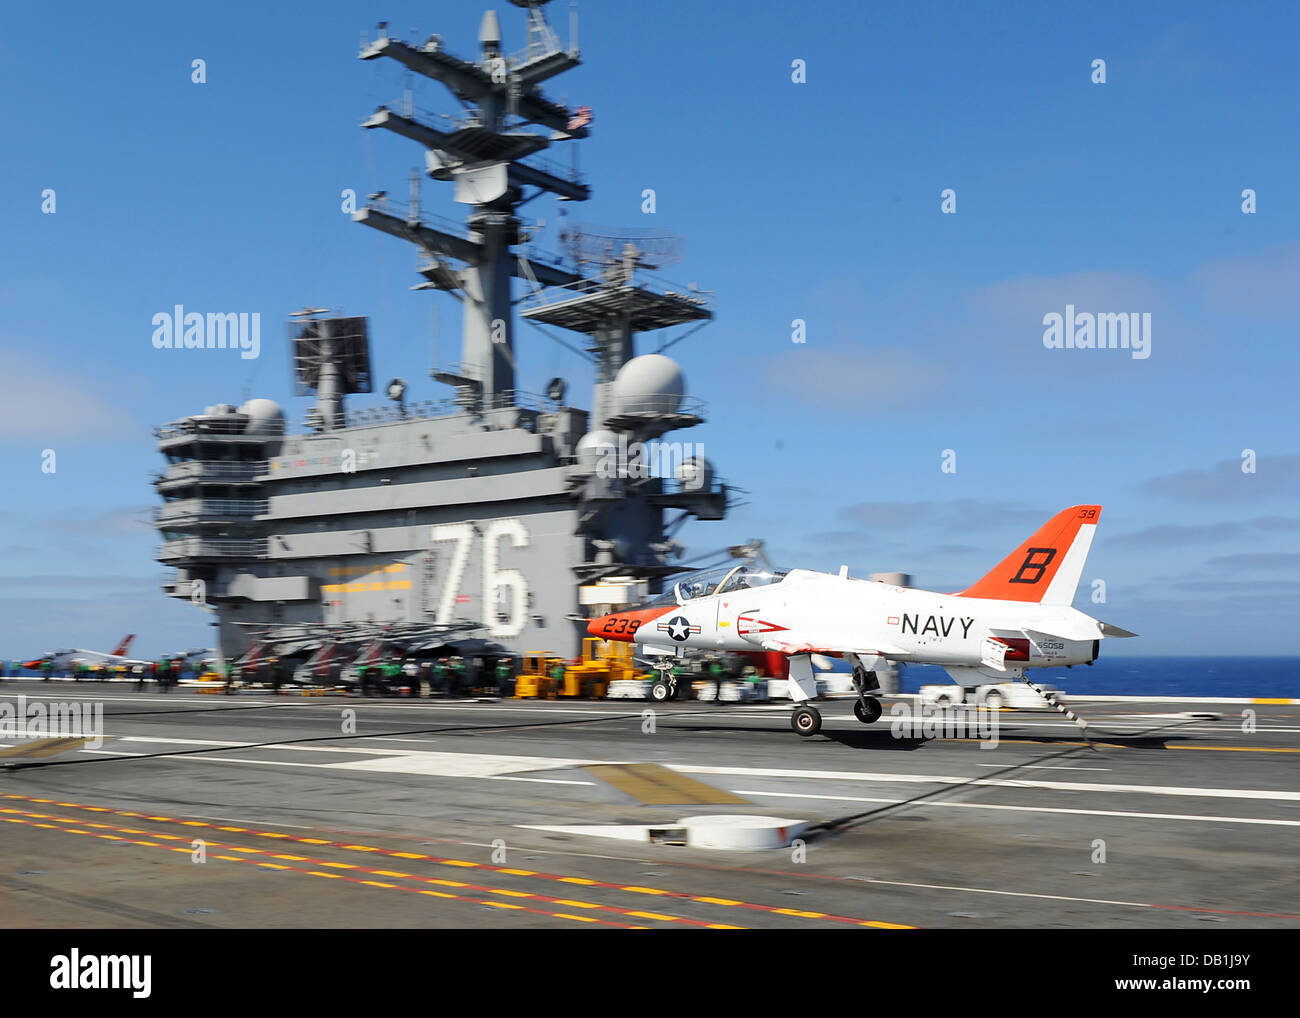 A T-45C Goshawk training aircraft from the Redhawks of Training Wing 2 approaches the flight deck of the aircraft - Stock Image